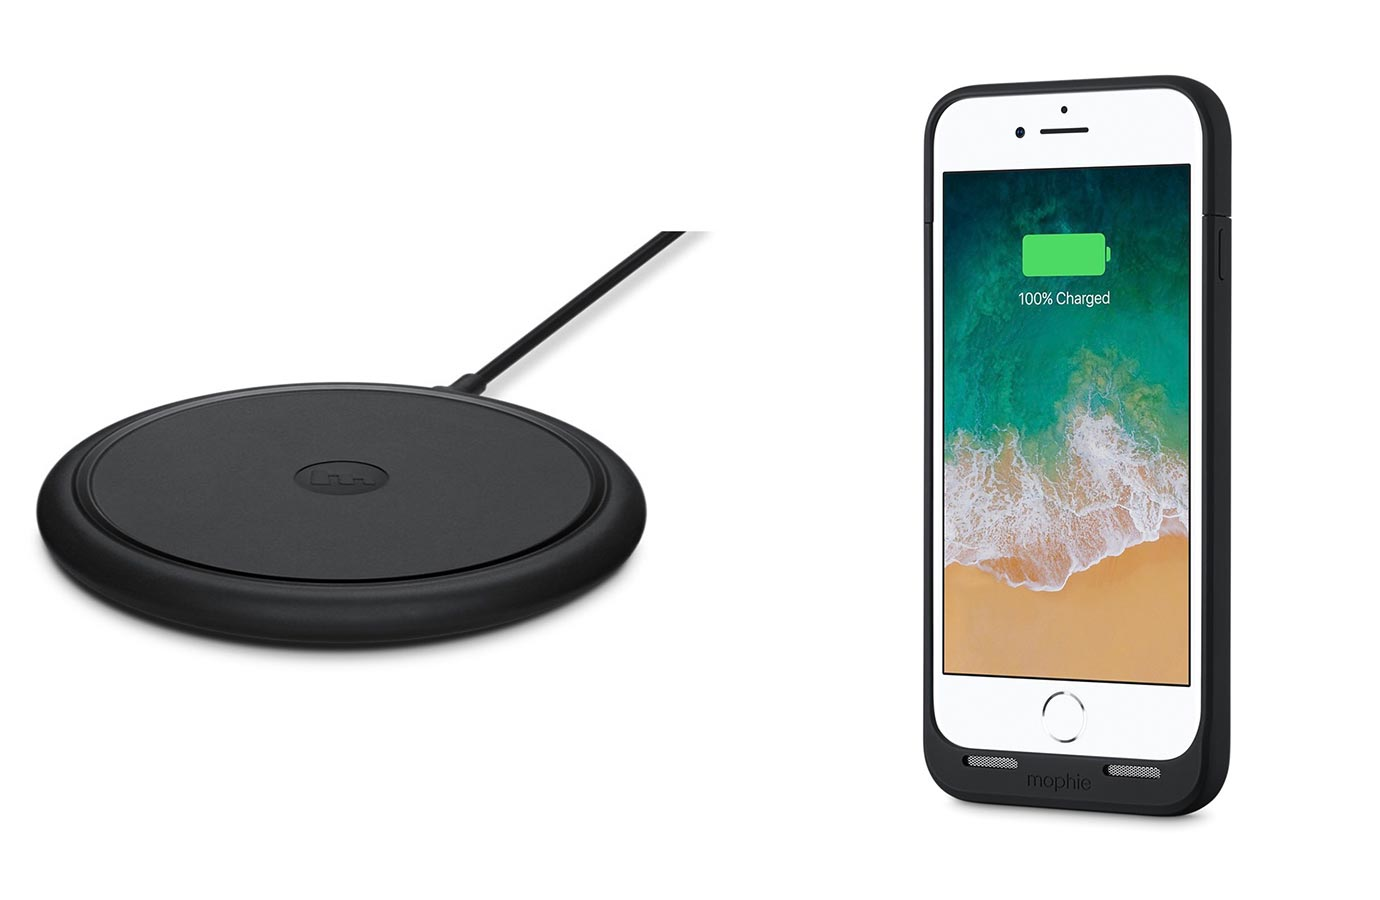 Apple Store、ワイヤレス充電器「mophi ewireless charging base」を1,000円、バッテリー内蔵ケース「mophie juice pack」を2,000円値下げ